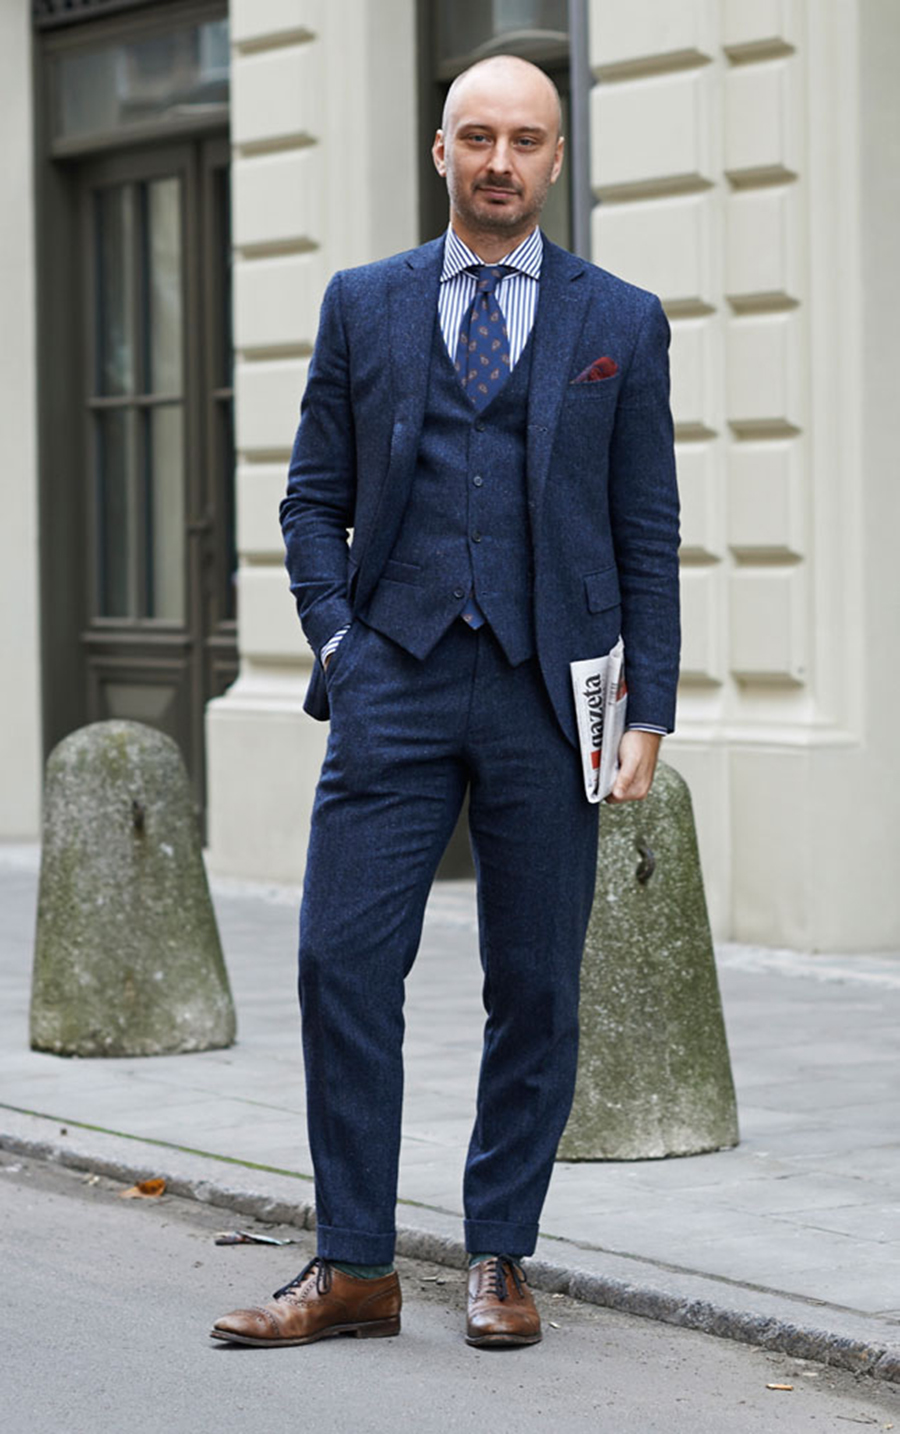 Mens 3 Piece Navy Suit | My Dress Tip